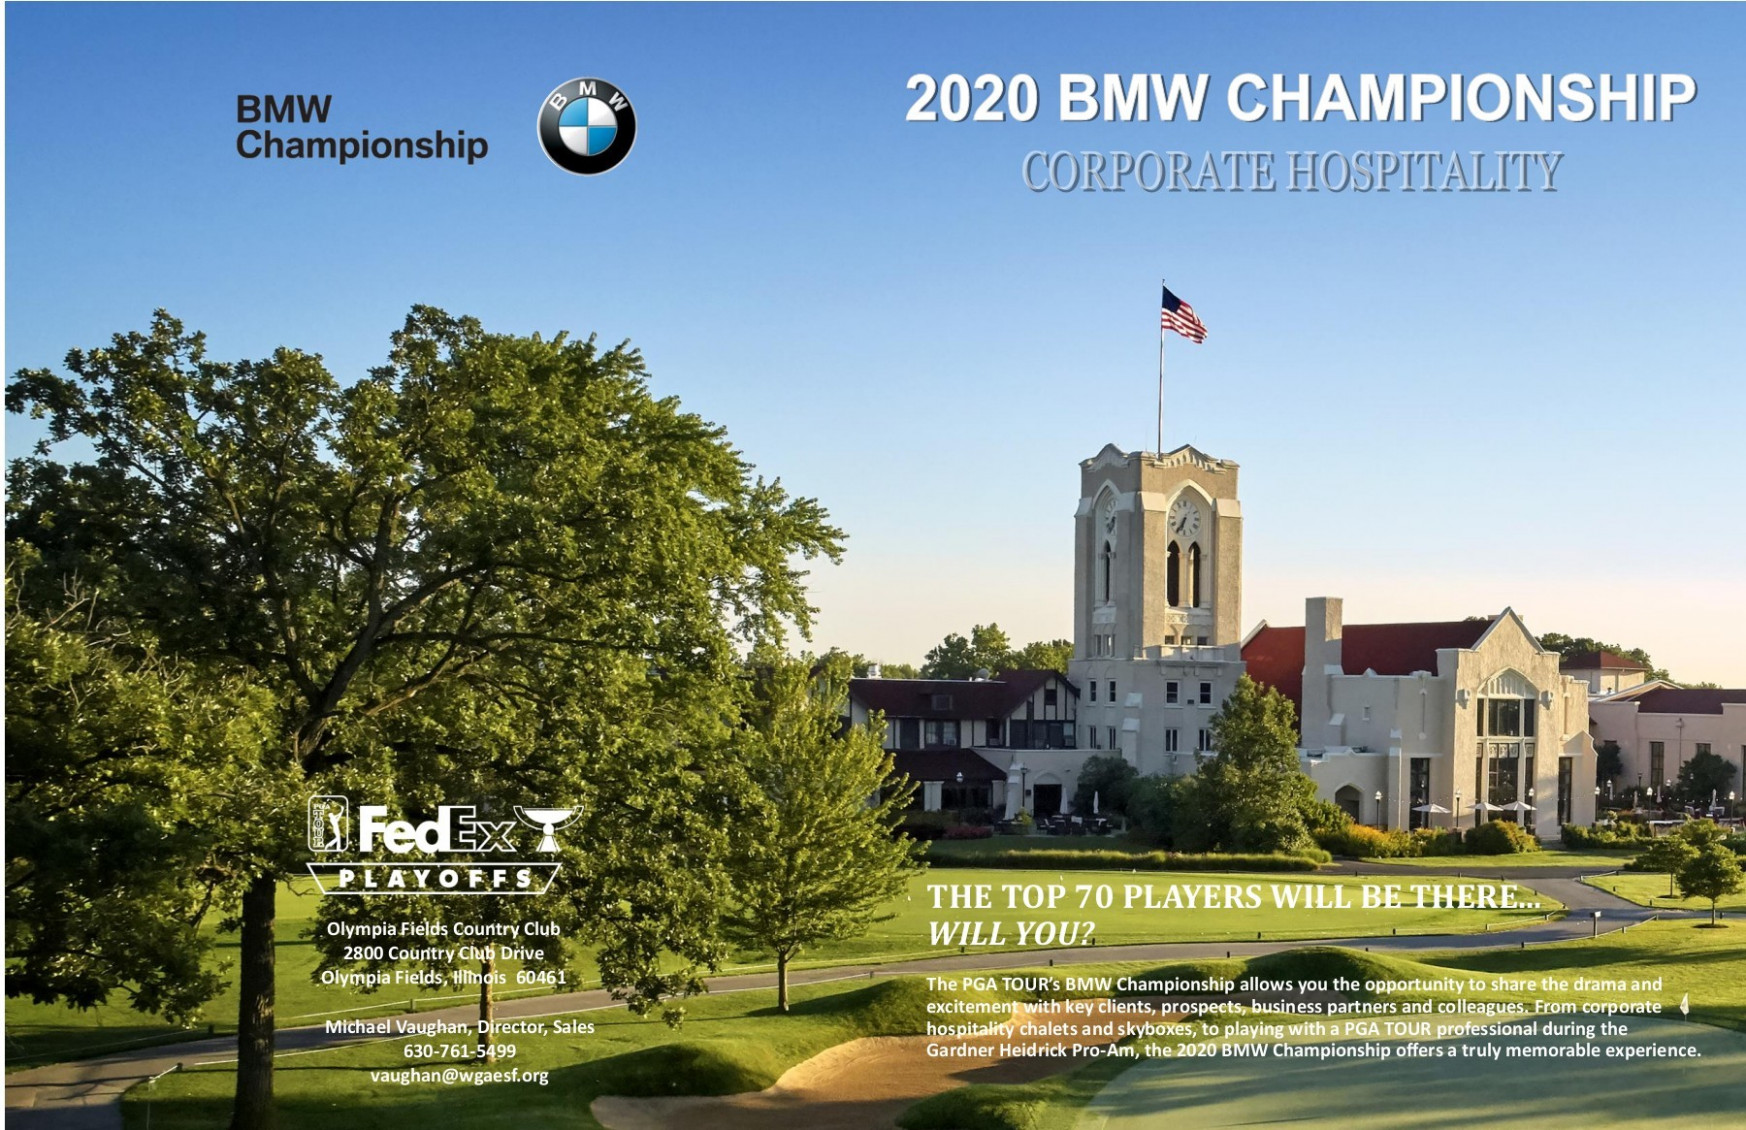 8 BMW Championship Corporate Hospitality Pages 8 - 82 - Text ..